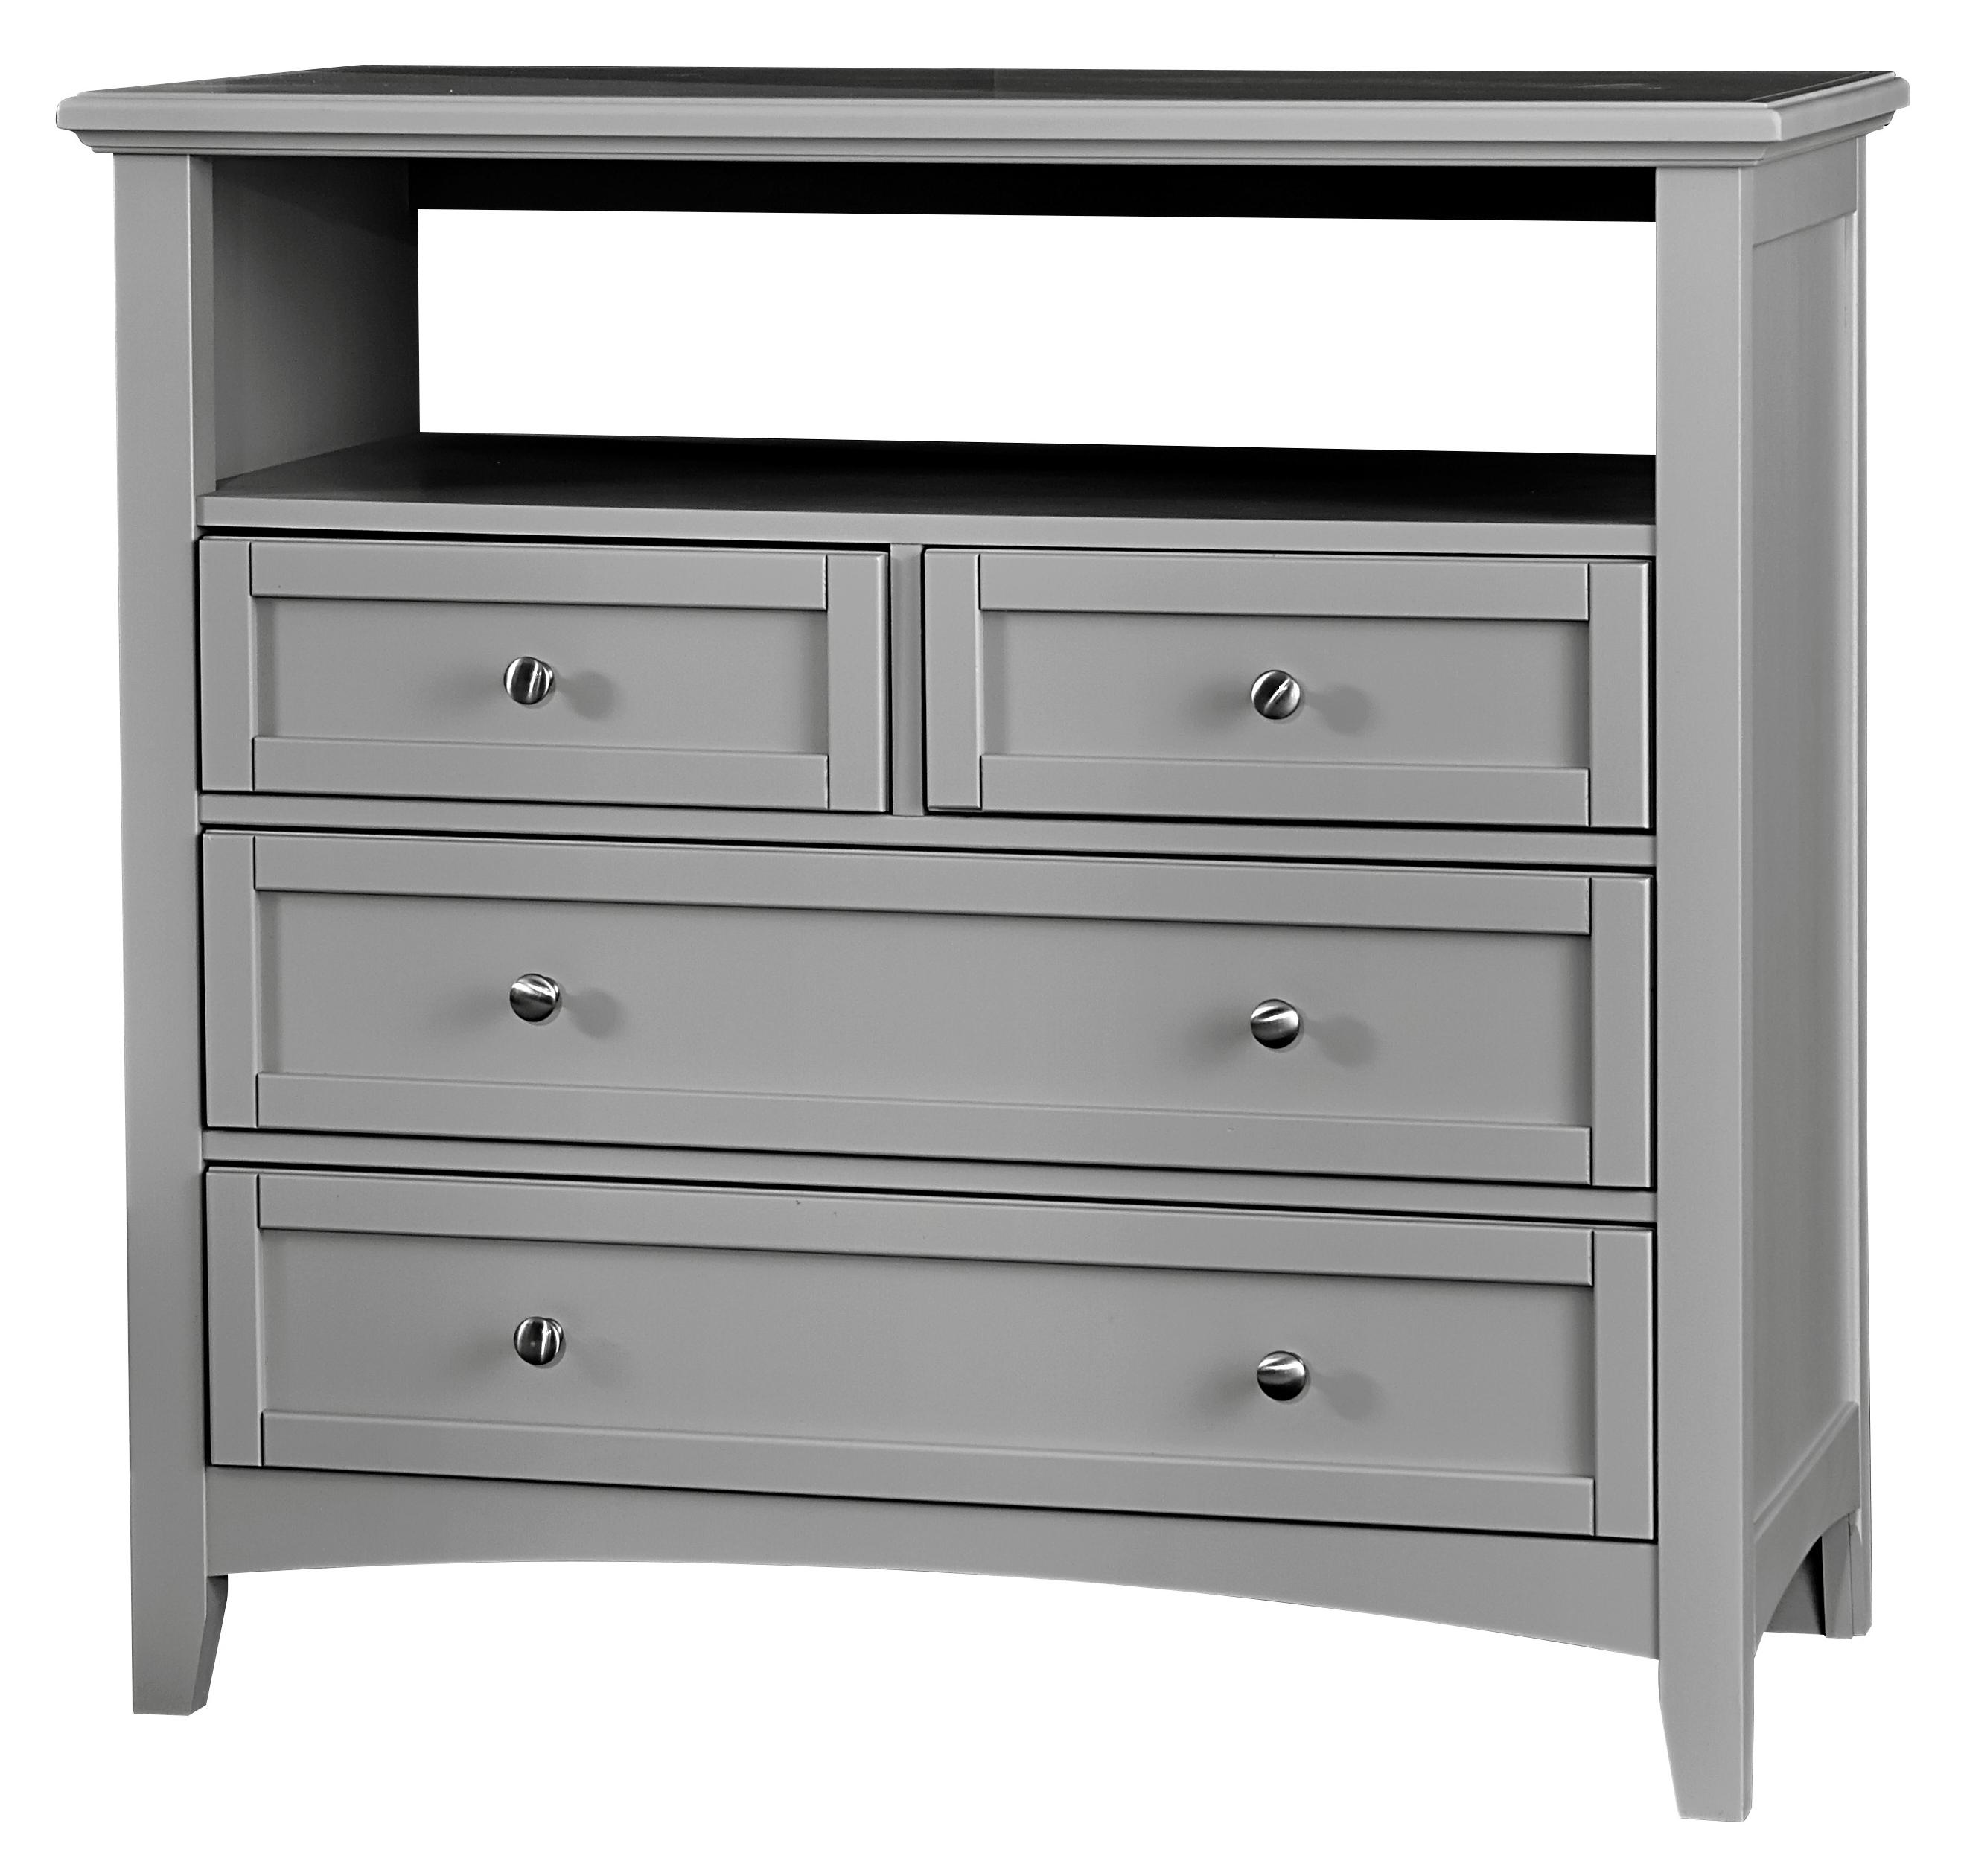 Vaughan Bassett Bonanza Media Unit - 4 Drawers - Item Number: BB26-114